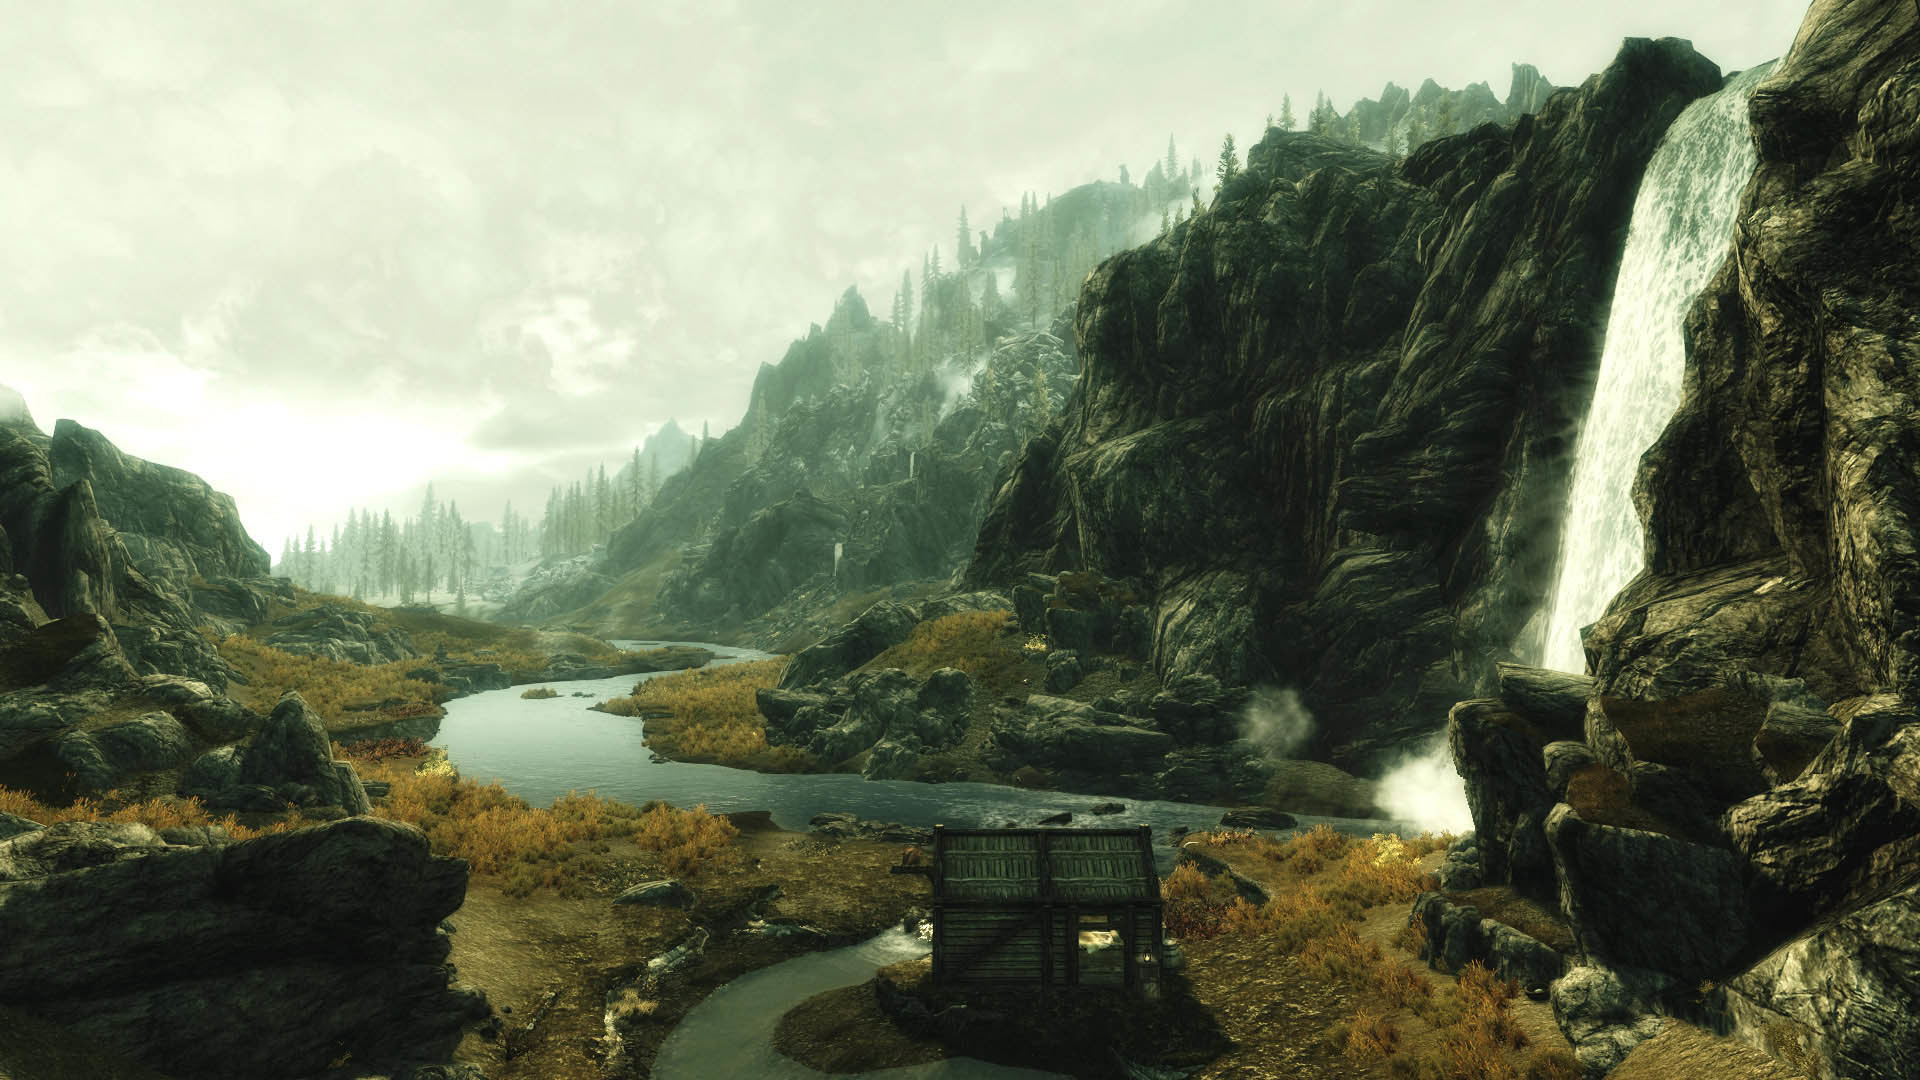 1920x1080 Skyrim Wallpaper Hd | HD Wallpapers | Pinterest | Skyrim, 3d wallpaper and  Wallpaper